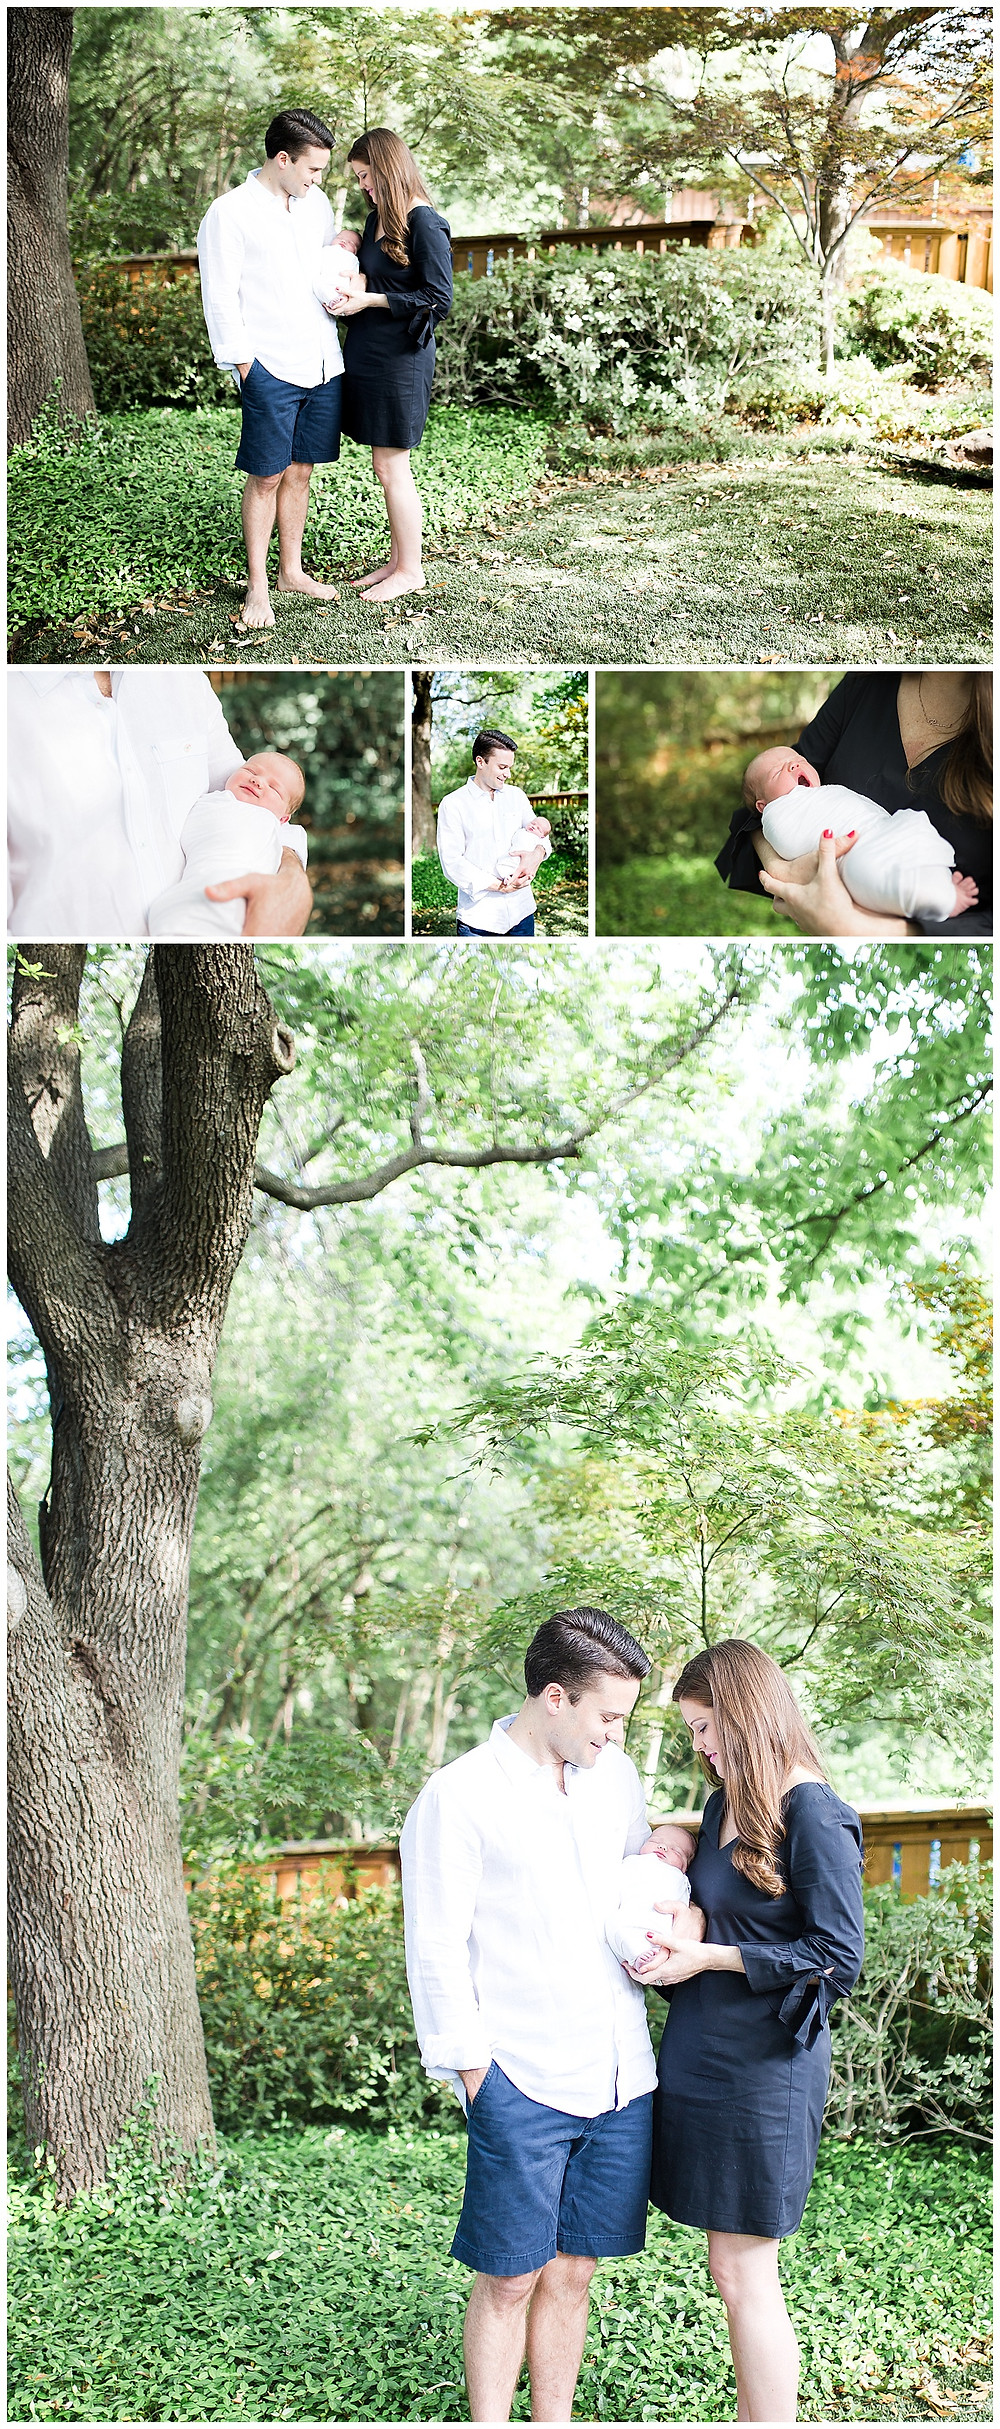 Dallas Newborn Lifestyle Photographer, Lexi Meadows Photography, Outdoor newborn photography session